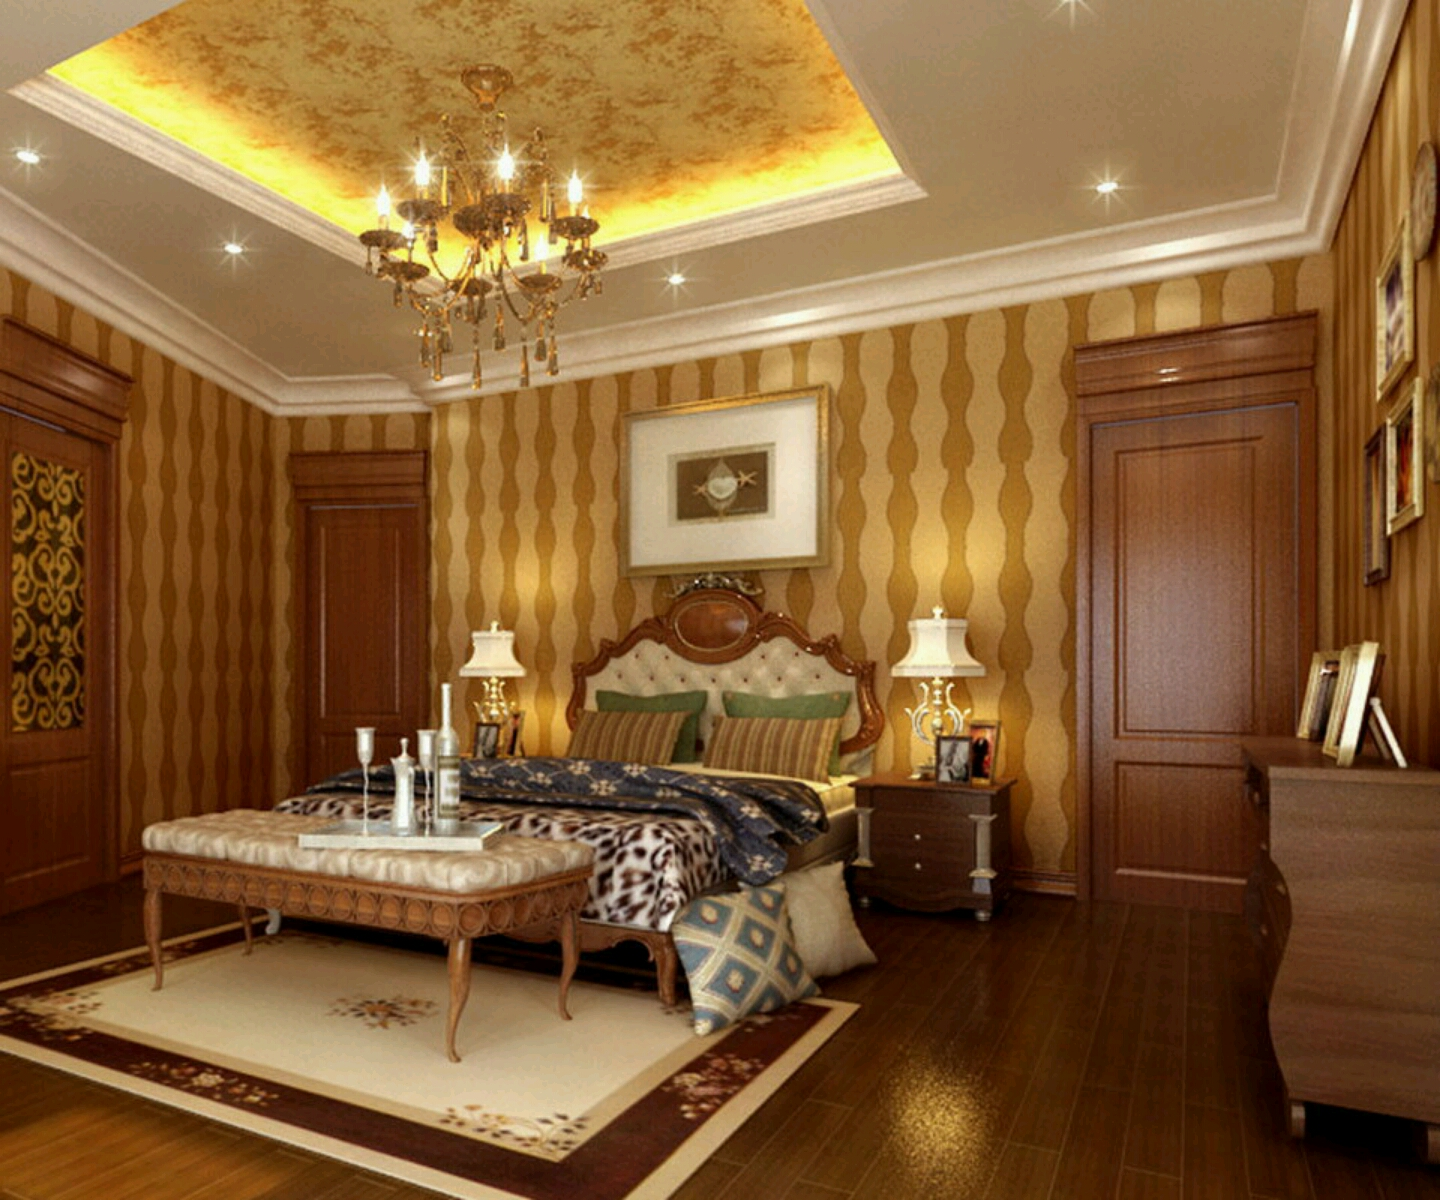 New home designs latest.: Modern bedrooms designs ceiling ...